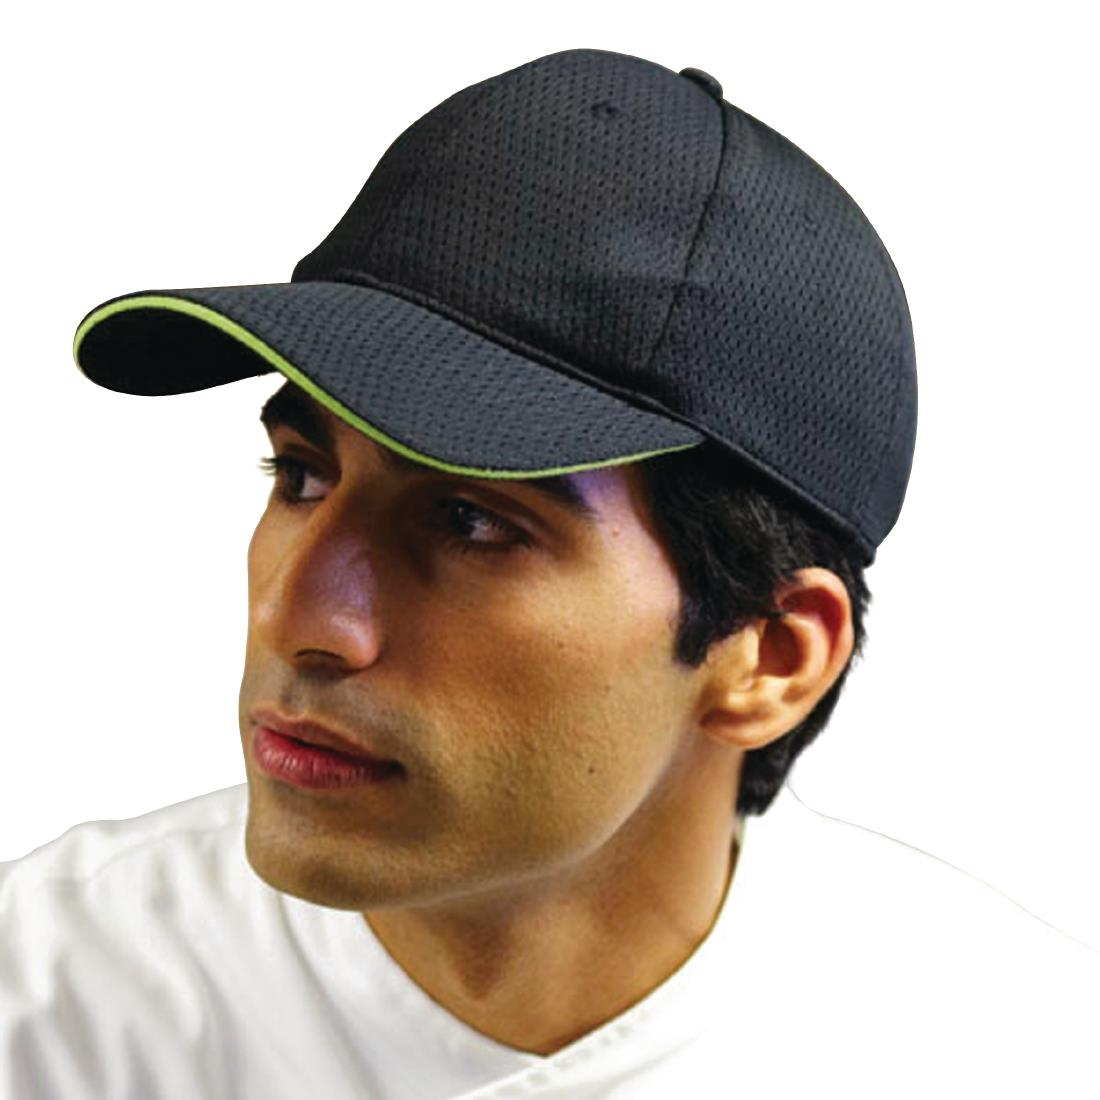 e9369c0b5 Chef Works Cool Vent Baseball Cap Black with Lime - A941 - Buy ...